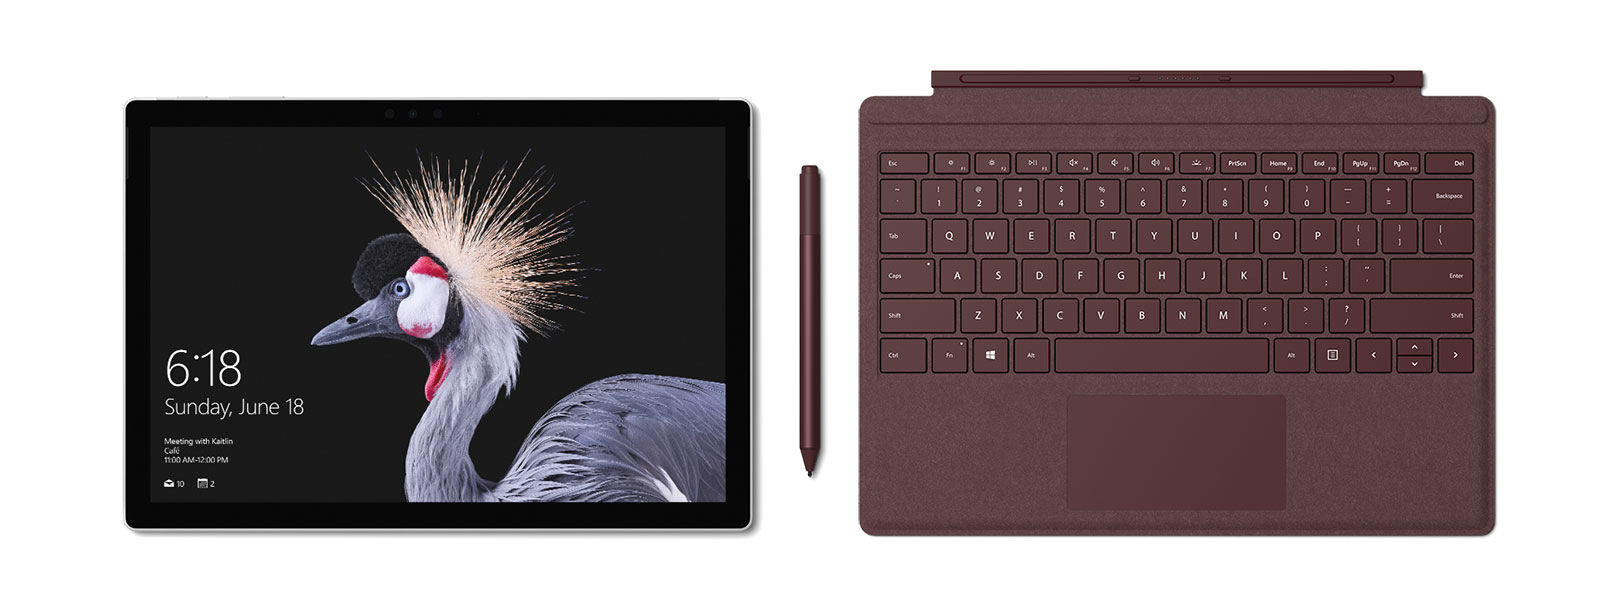 صورة لـ Surface Pro مع Surface Pro Signature Type Cover وSurface Pen وSurface Arc Mouse باللون النبيتي. يأتي مع قلم Surface Pen.